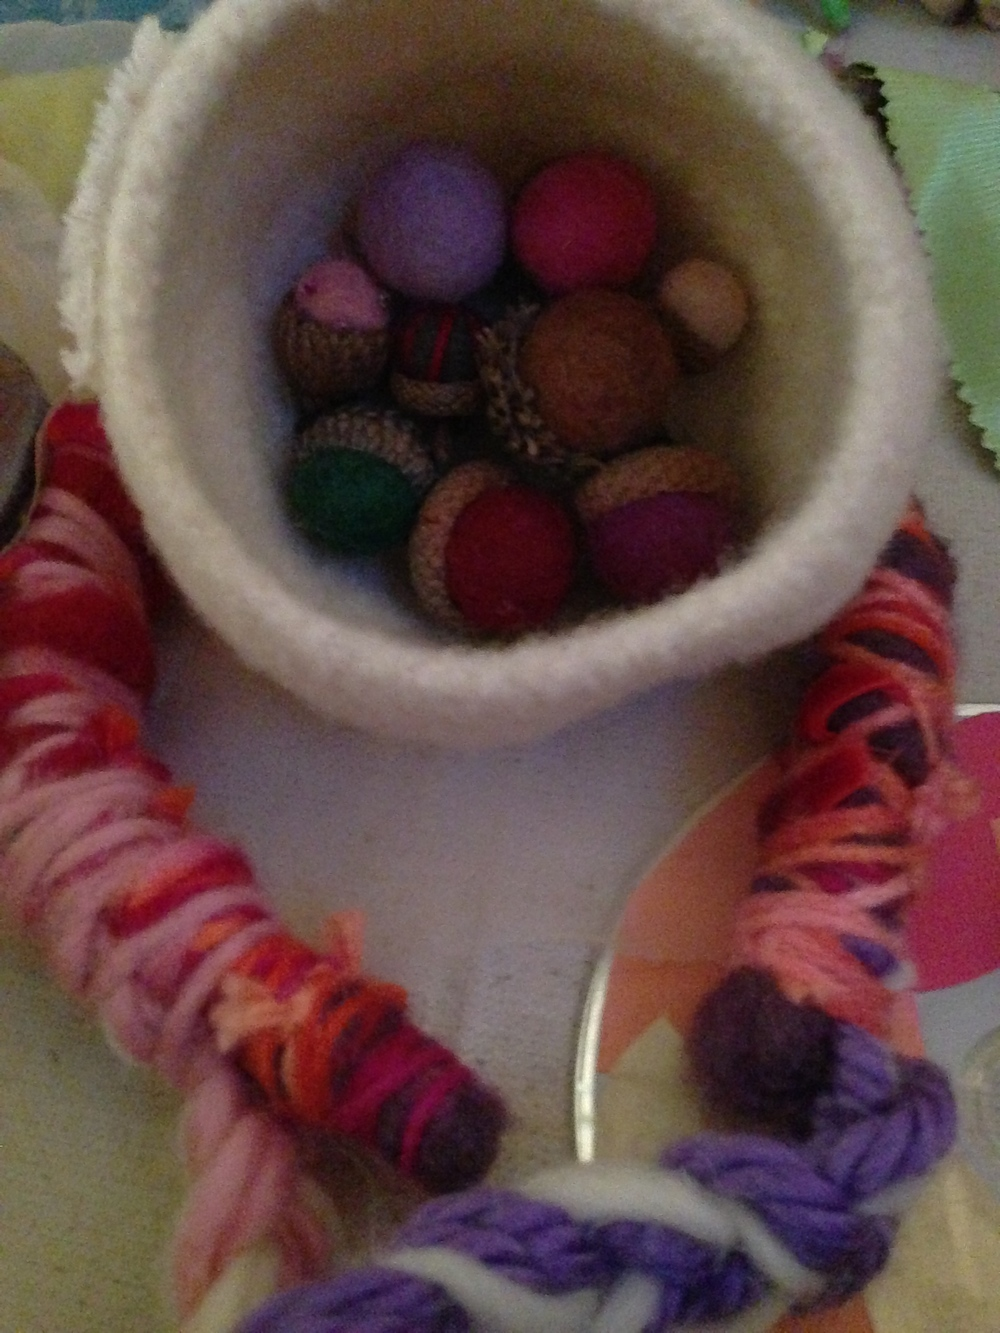 Kristin made felted acorns in a felted bowl! Fun, natural, colorful. Elisha and her daughter Sophia crafted a felt and yarn headband with braided strands.